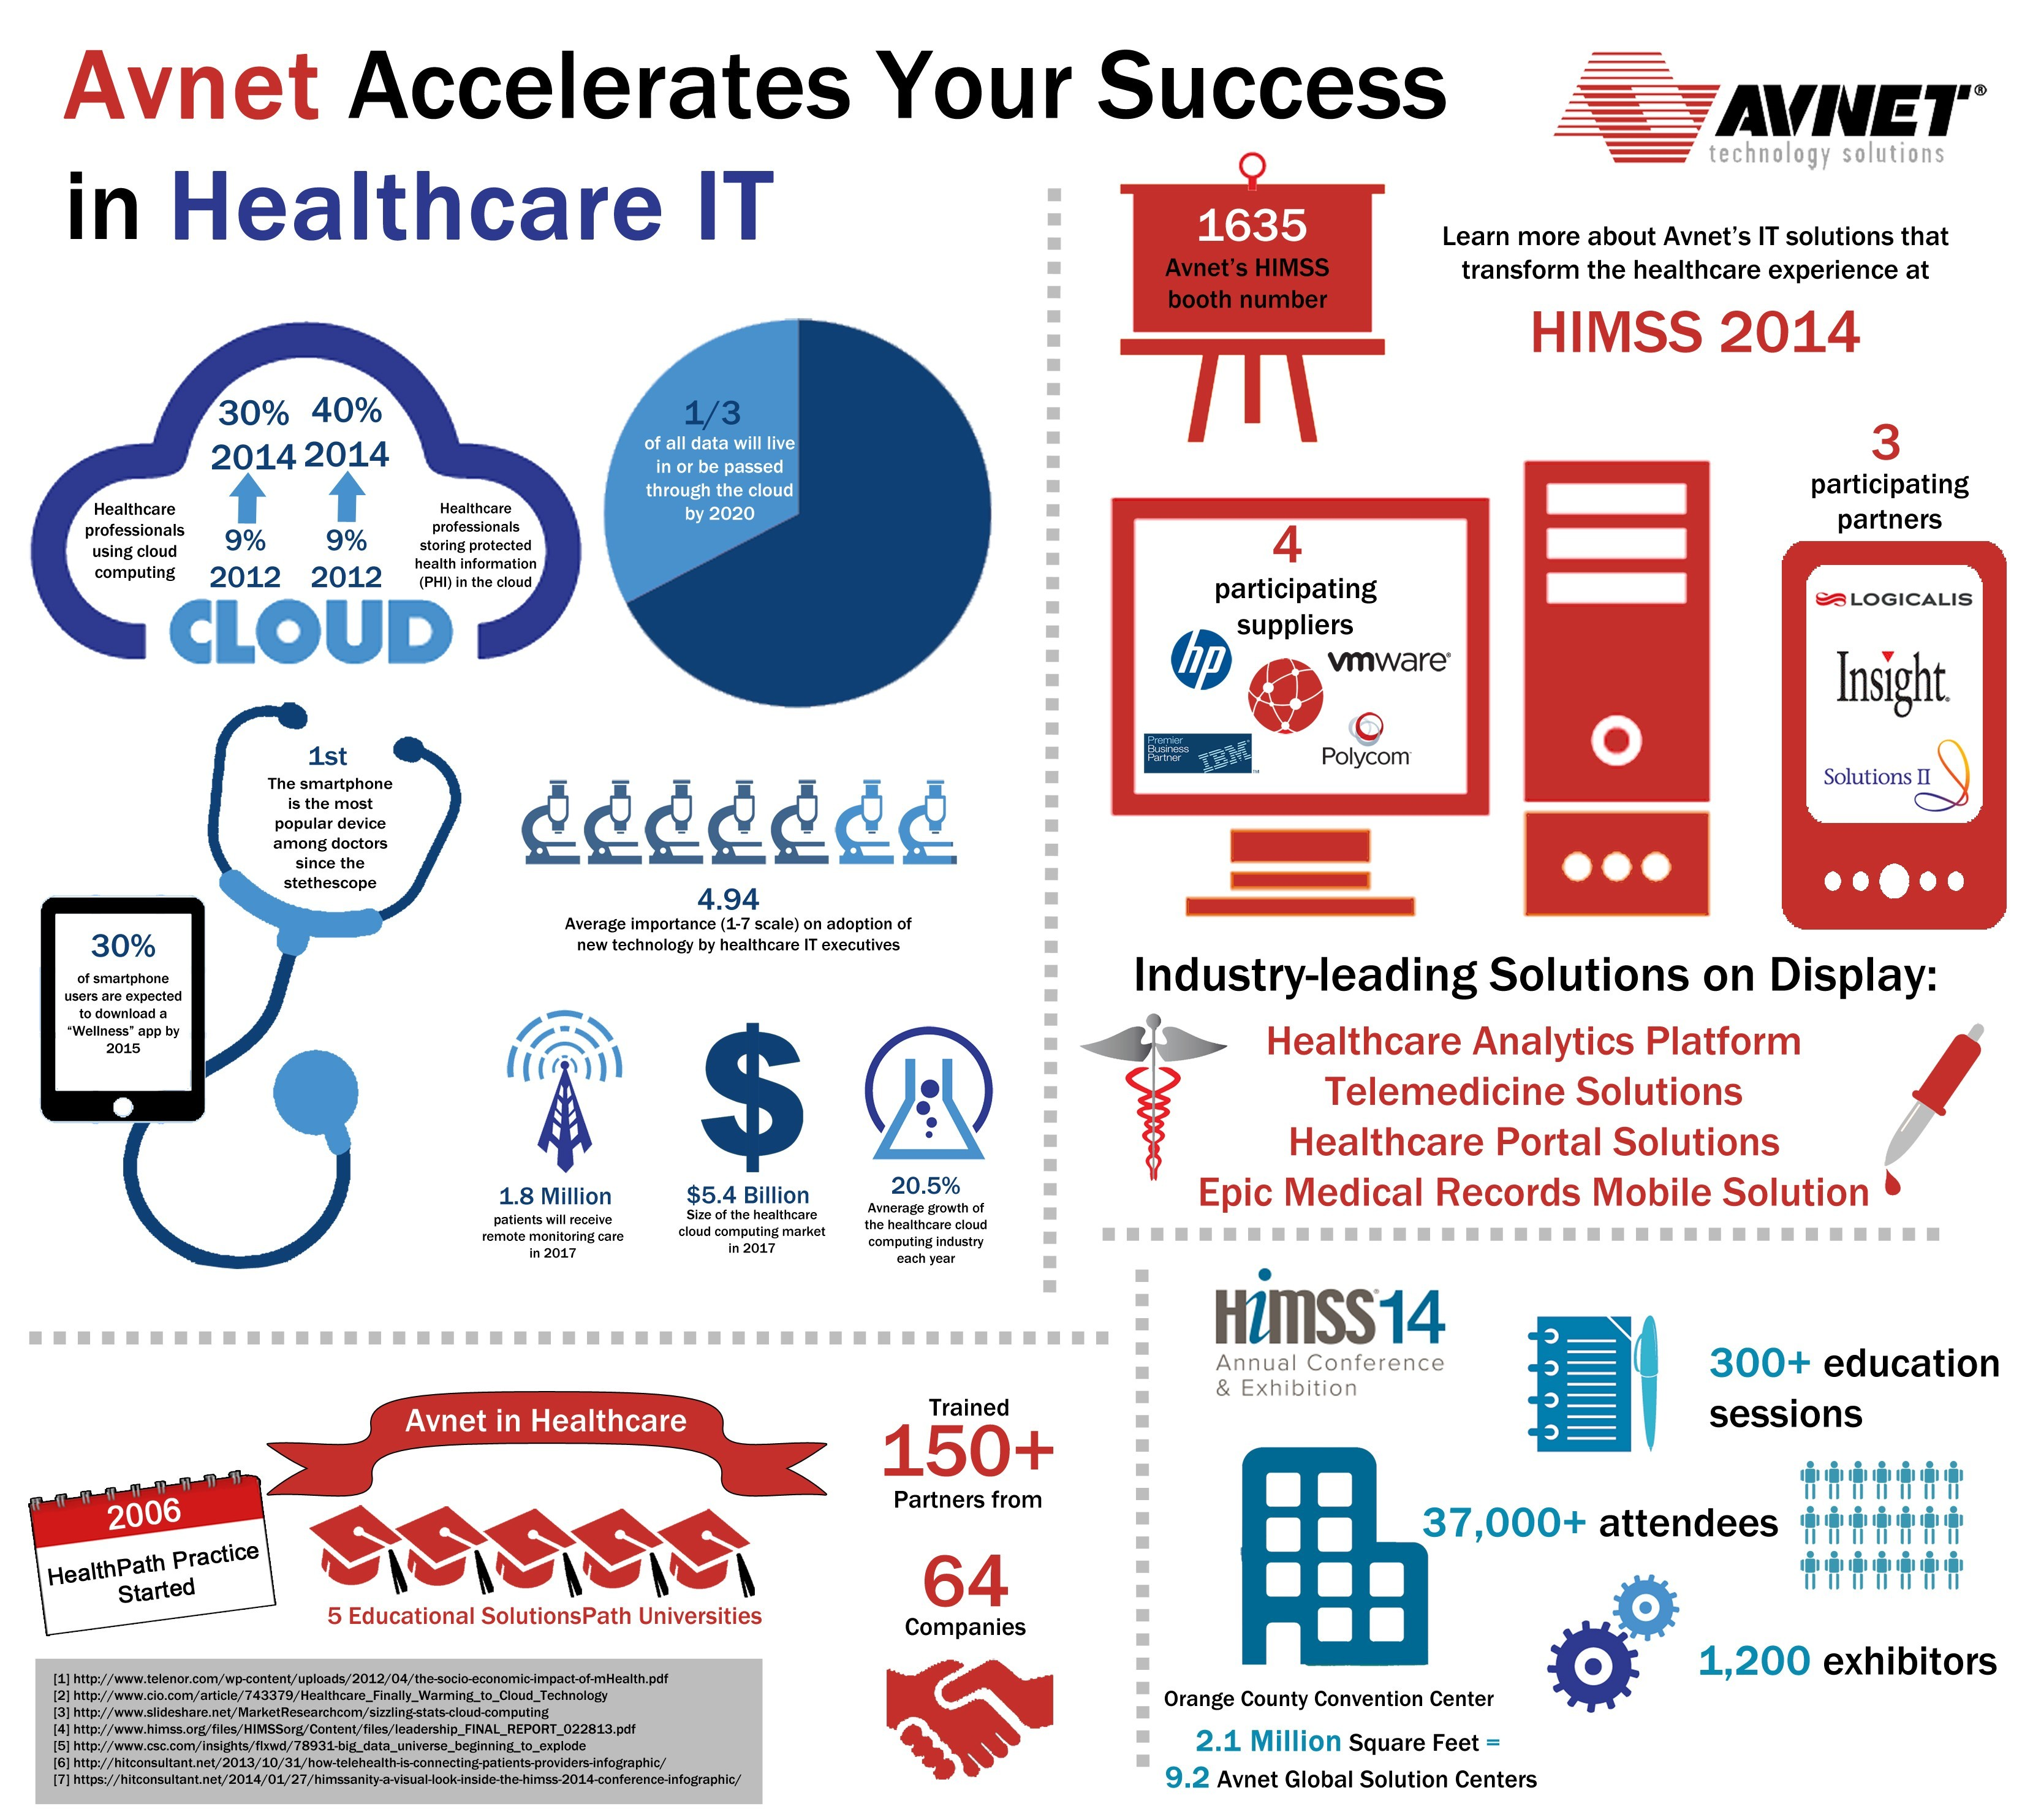 Technology Management Image: Avnet Technology Solutions Expands Healthcare Analytics